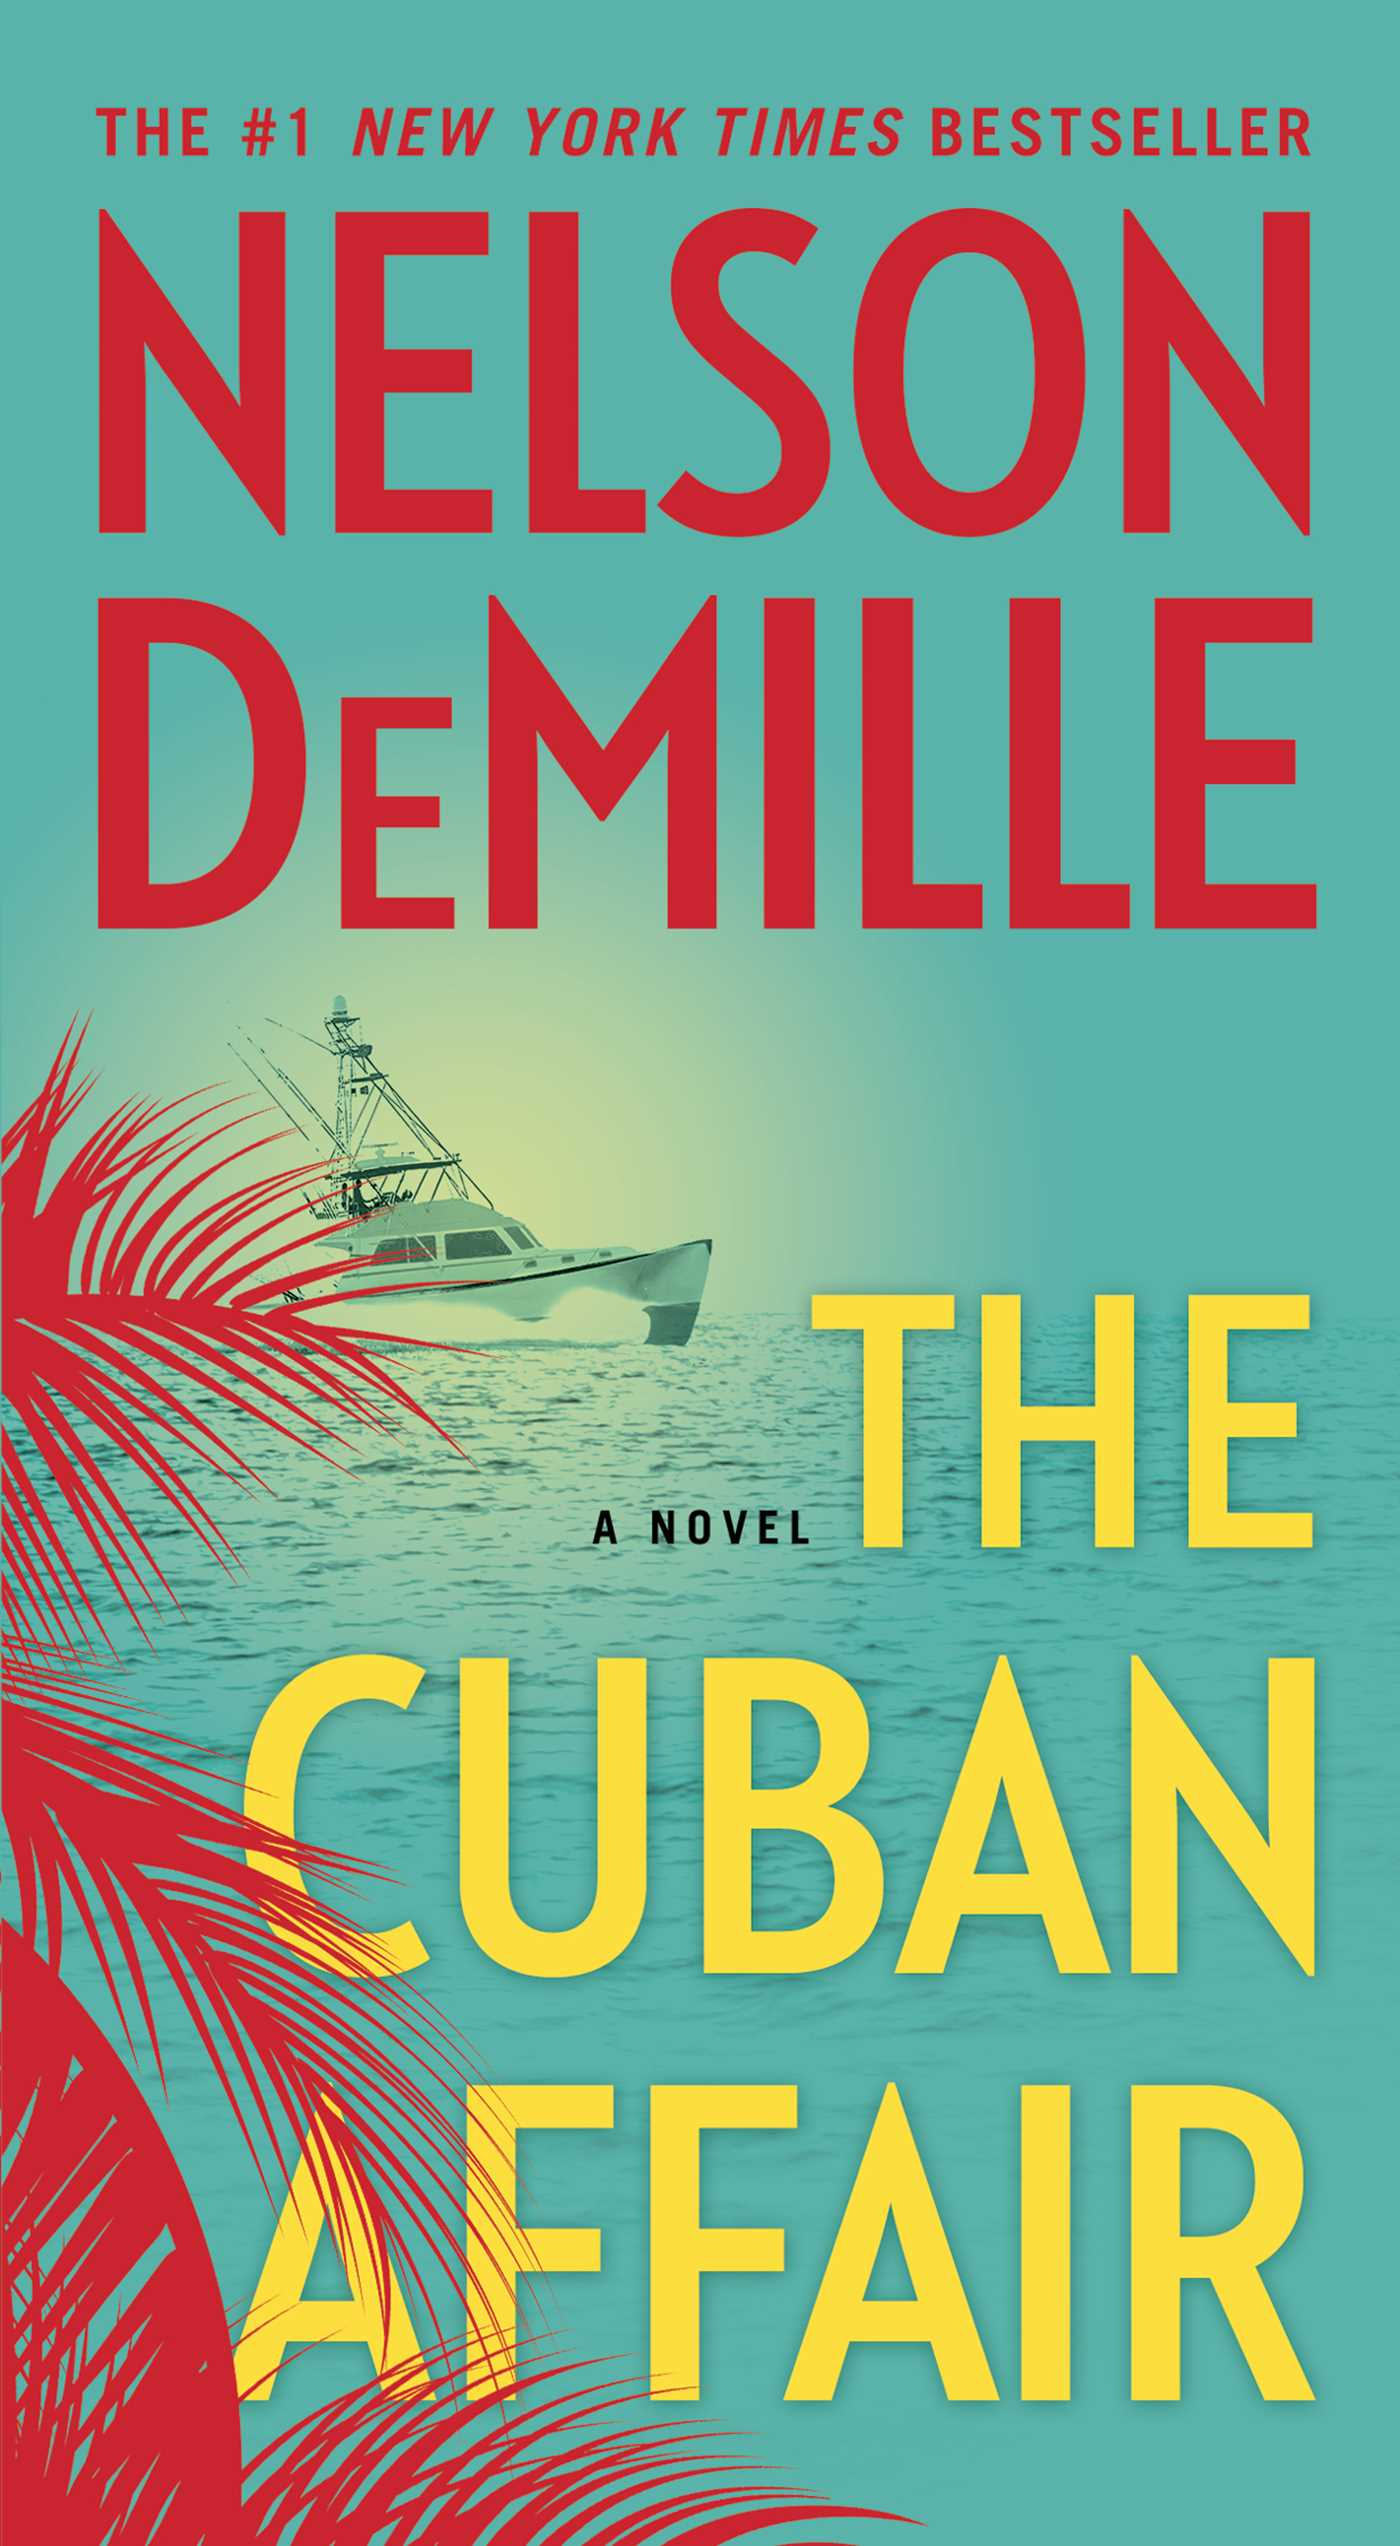 Bestsellers Libros The Cuban Affair Book By Nelson Demille Official Publisher